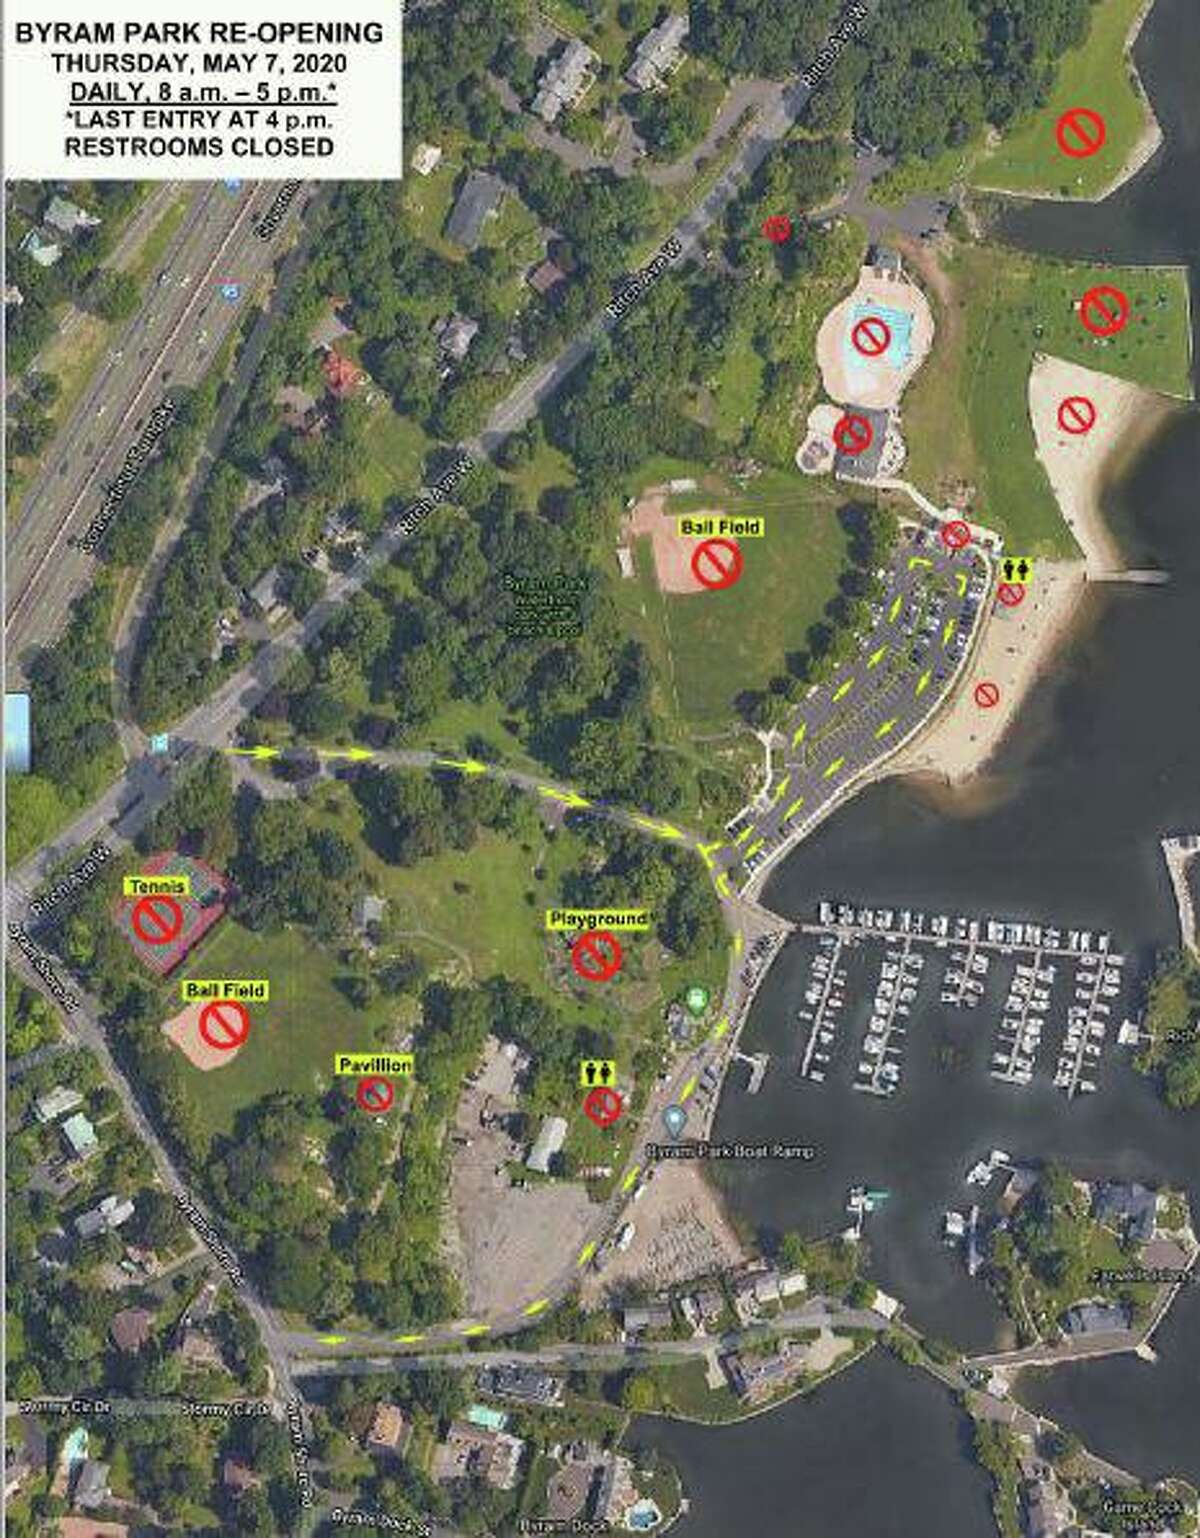 The town of Greenwich released this map with the detais of the reopening of Byram Park.